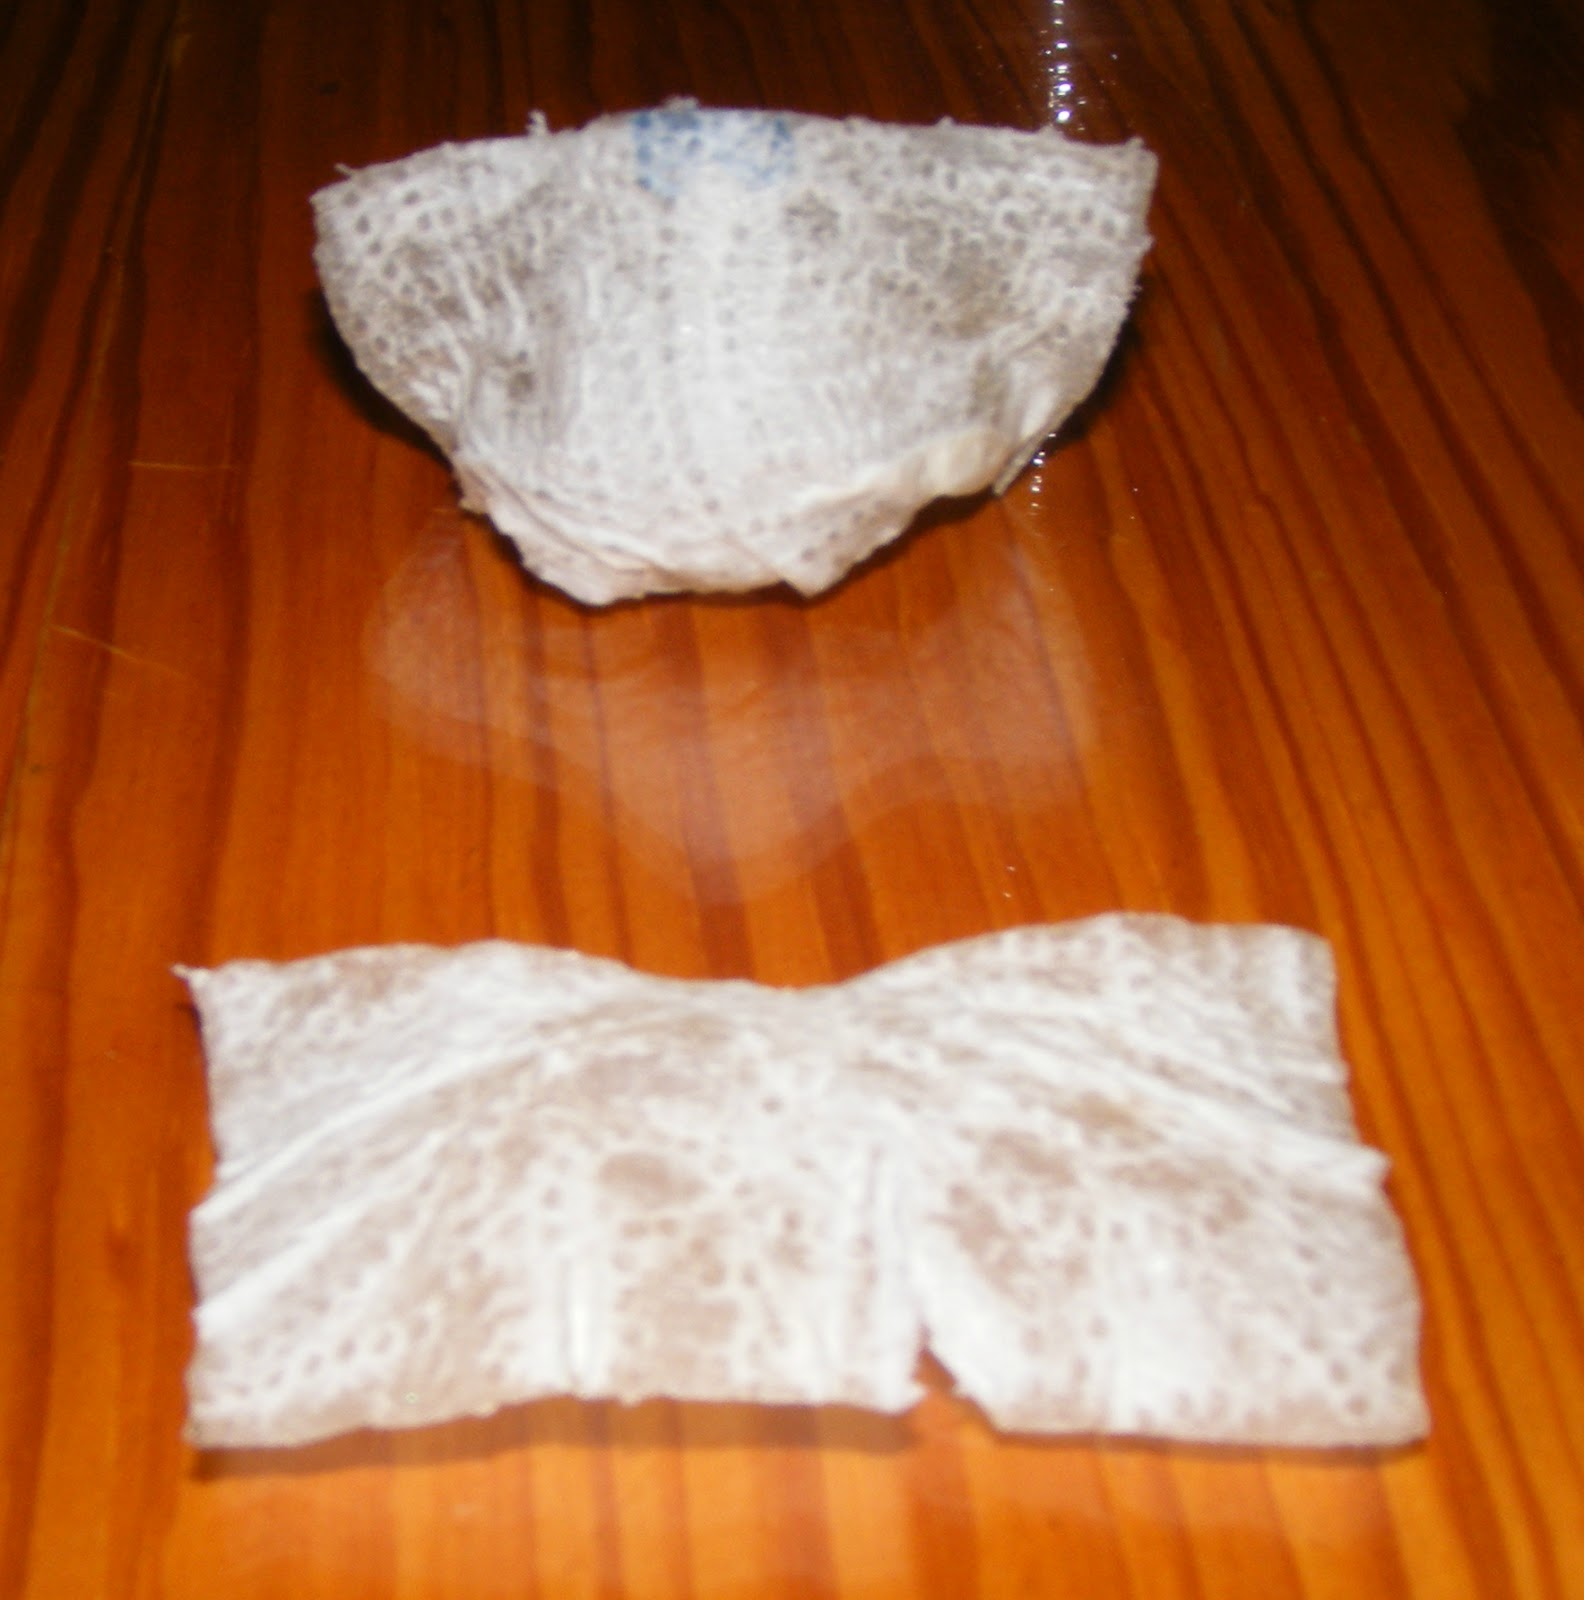 Pore Strips Images - Reverse Search